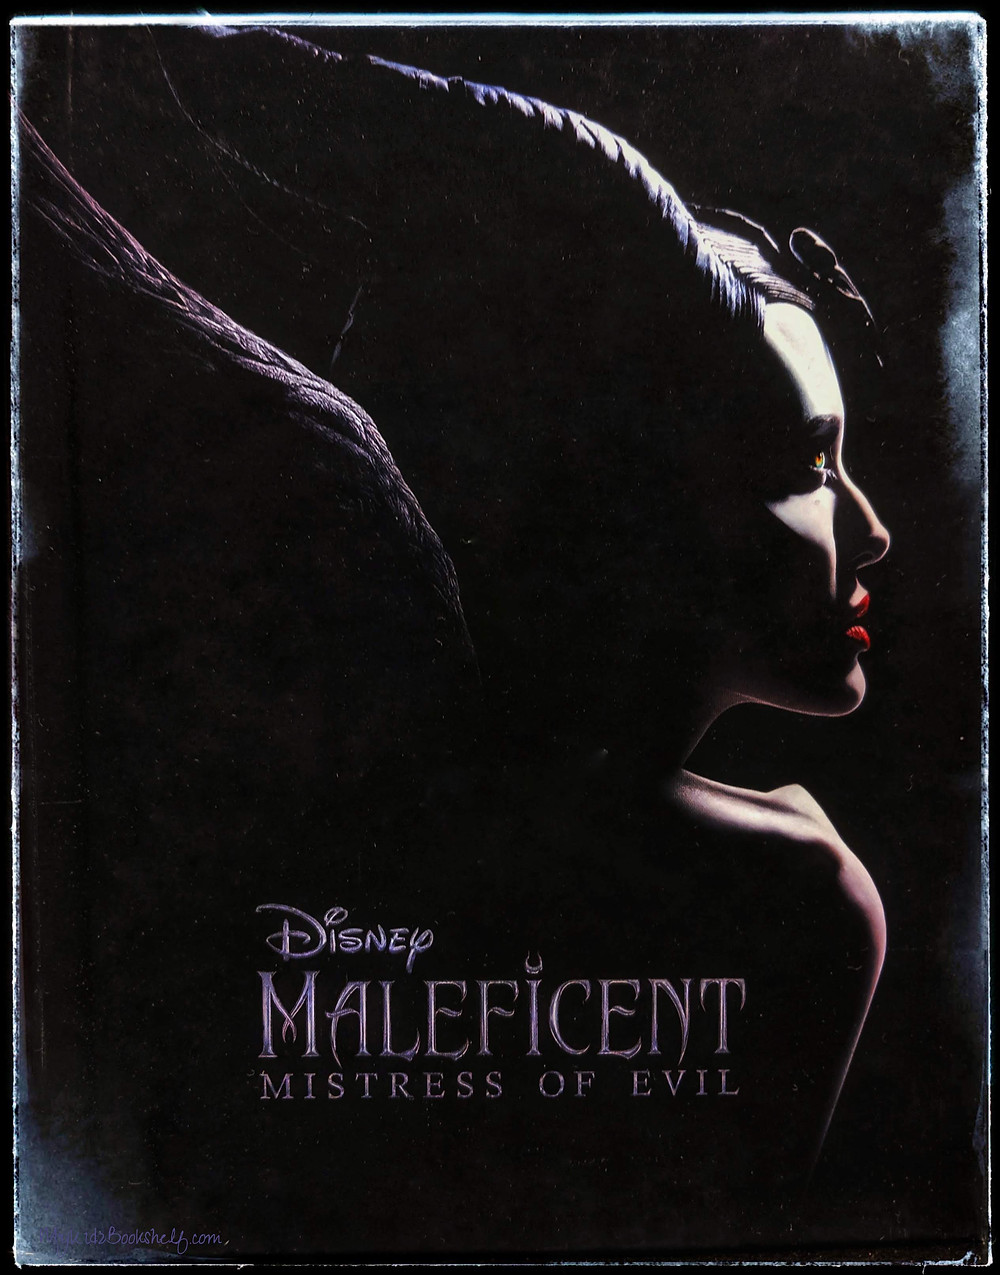 Maleficent-Mistress-of-Evil-disney-novelization-book-movie